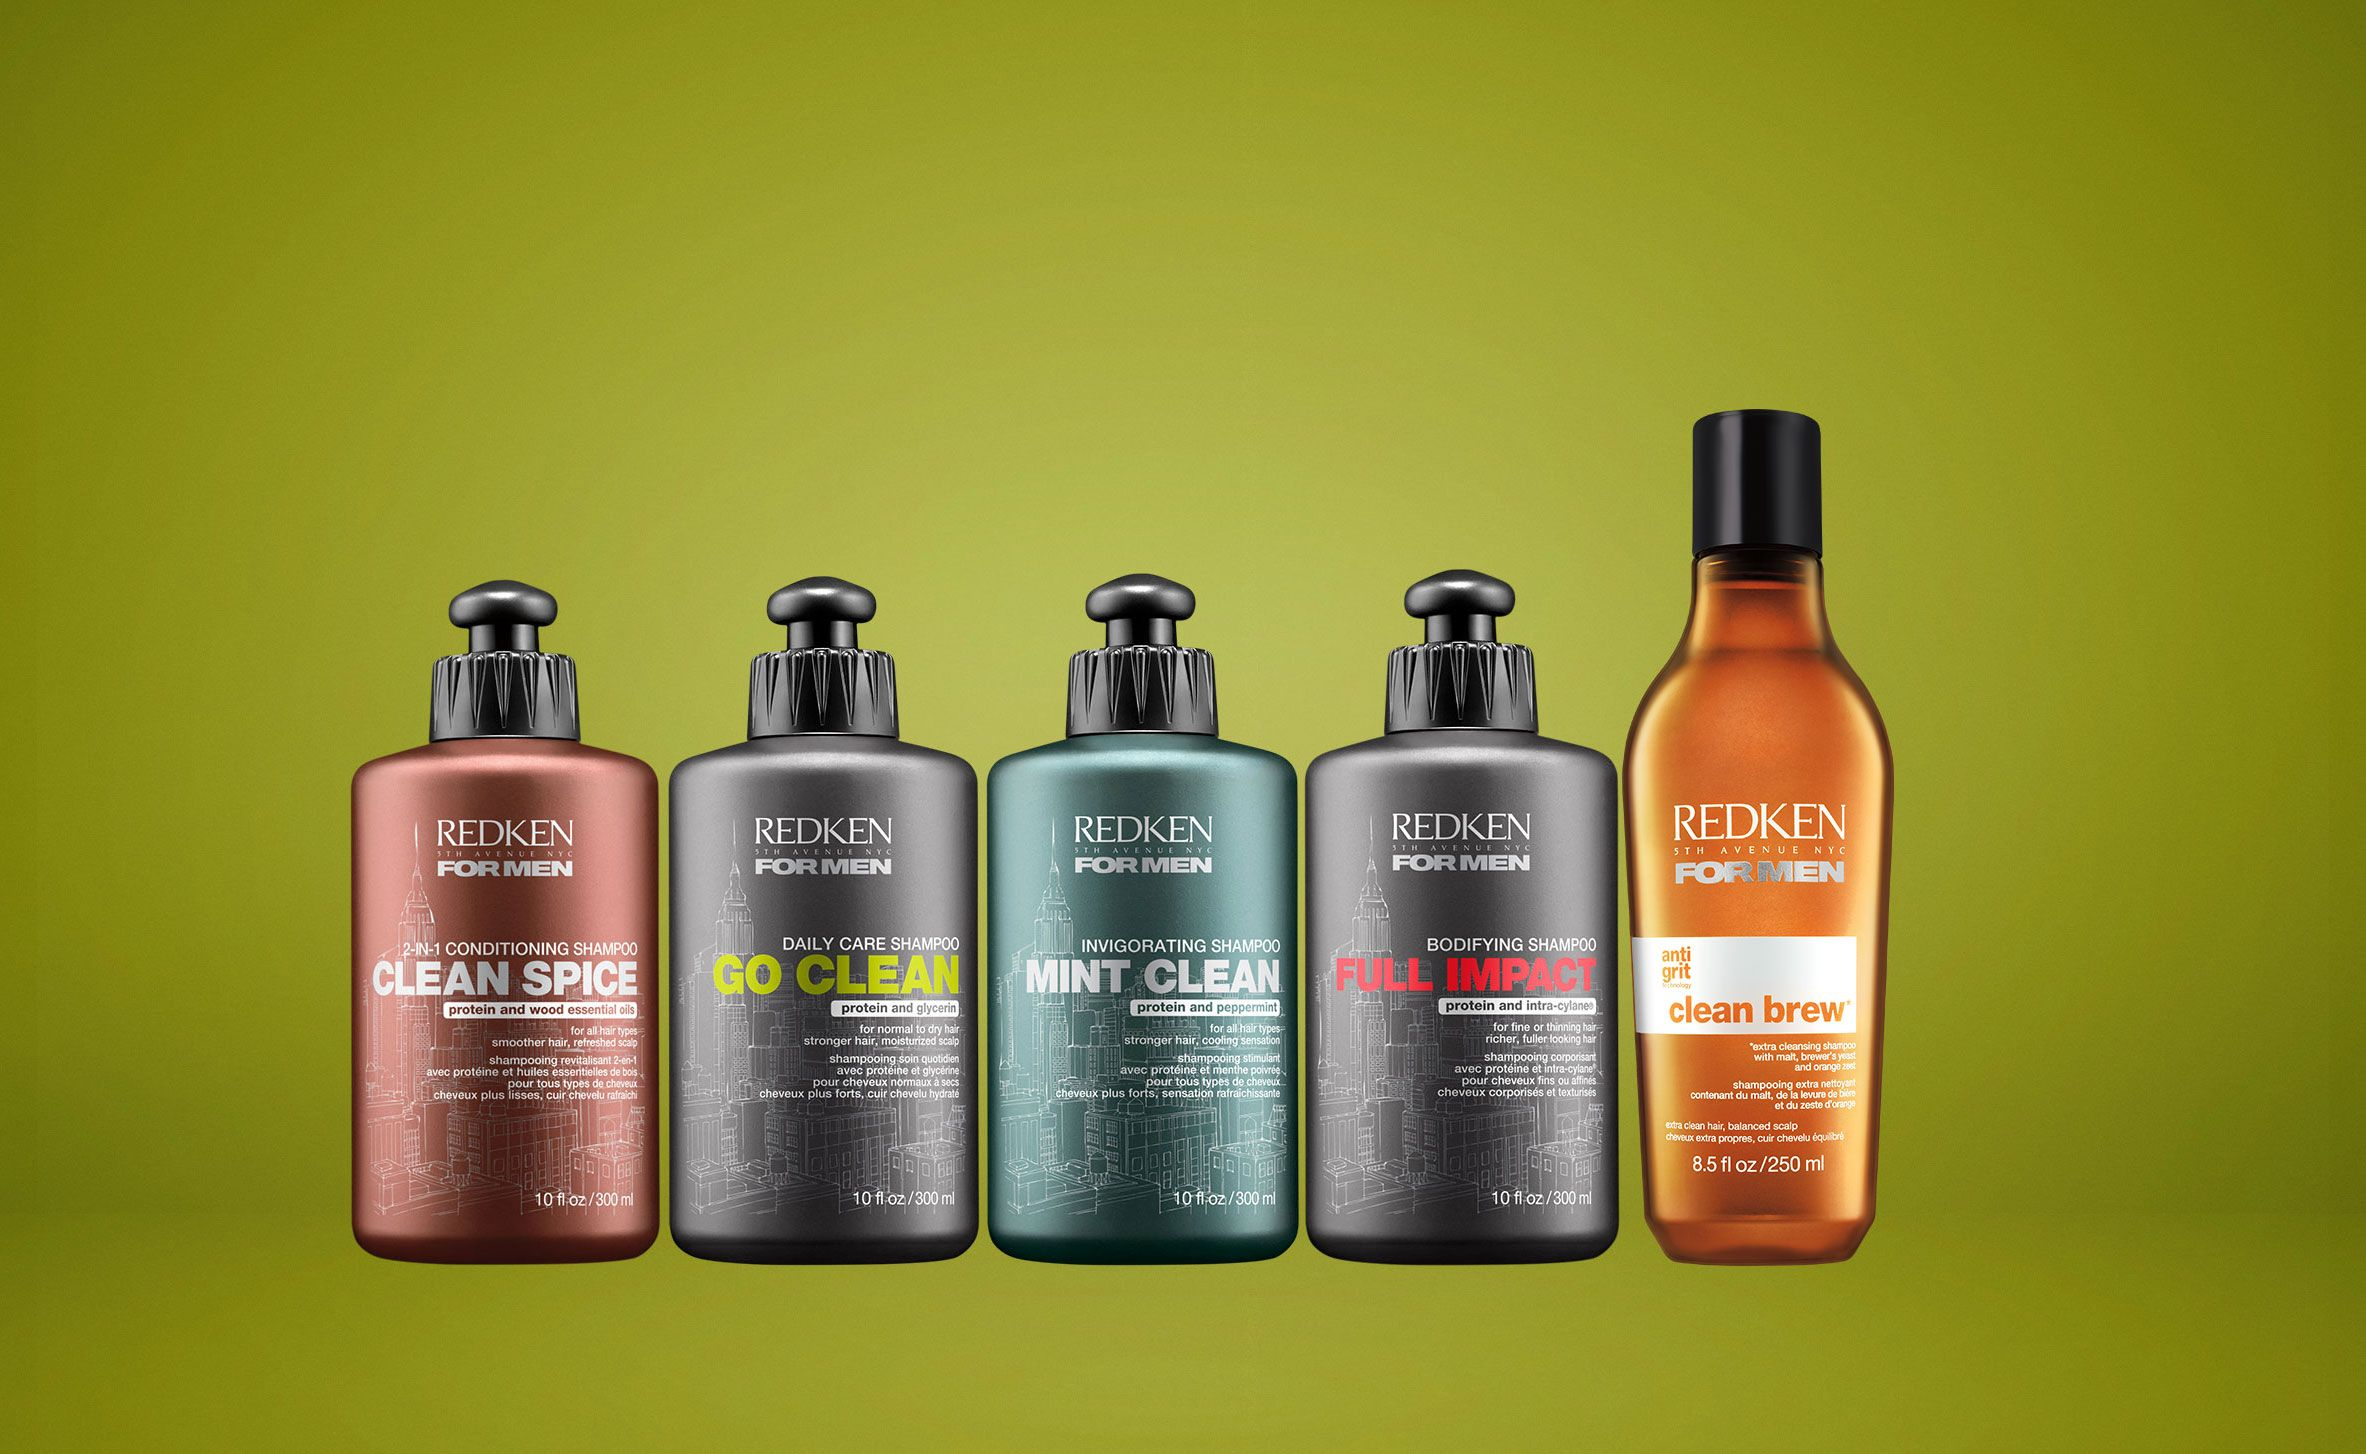 Redken 5th Avenue NYC For Men Haircare Product Line